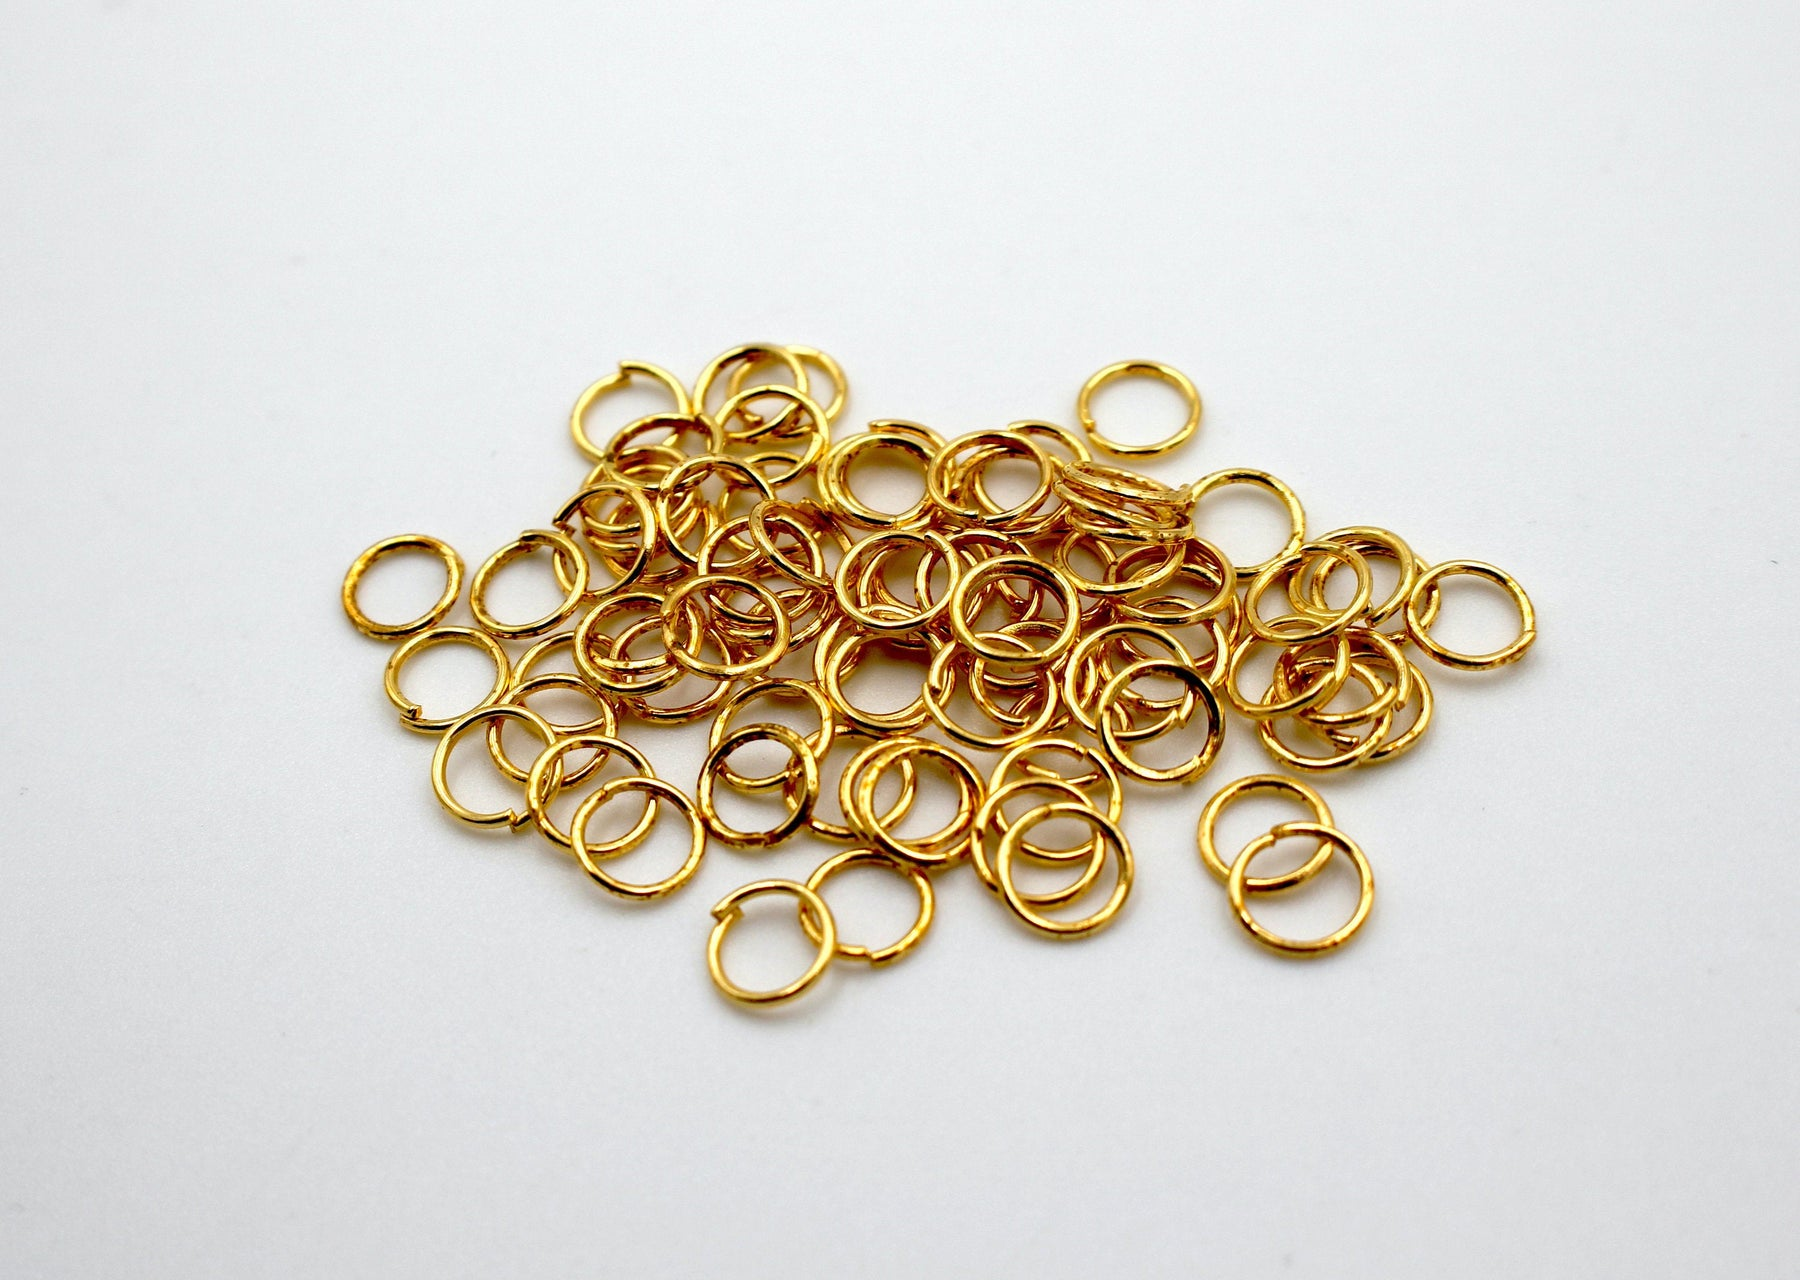 50 pieces, 6mm 24k shiny gold jump rings, open jump rings, gold connector, bulk gold jump rings,